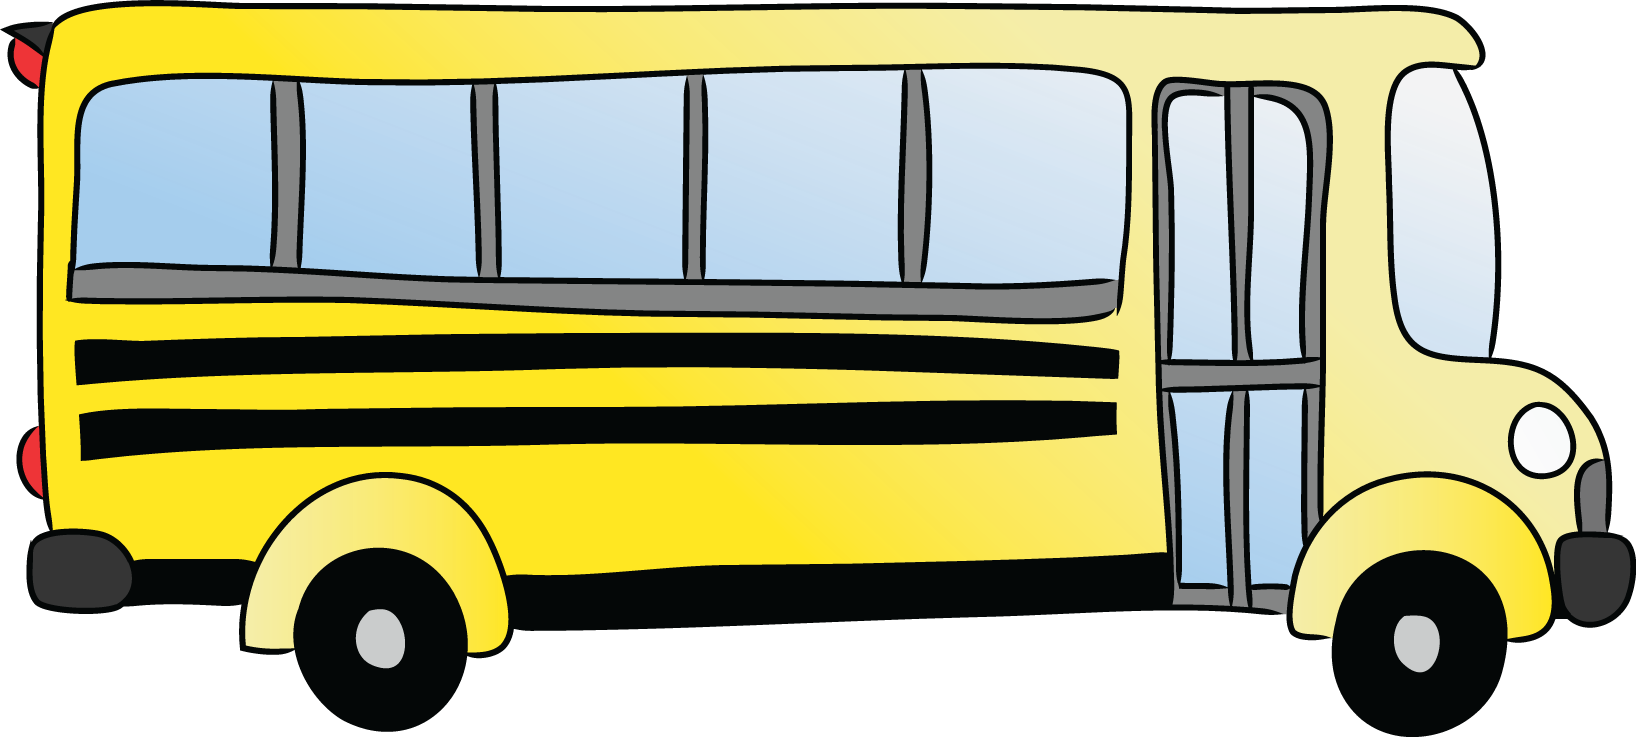 transportation vector sbs bus